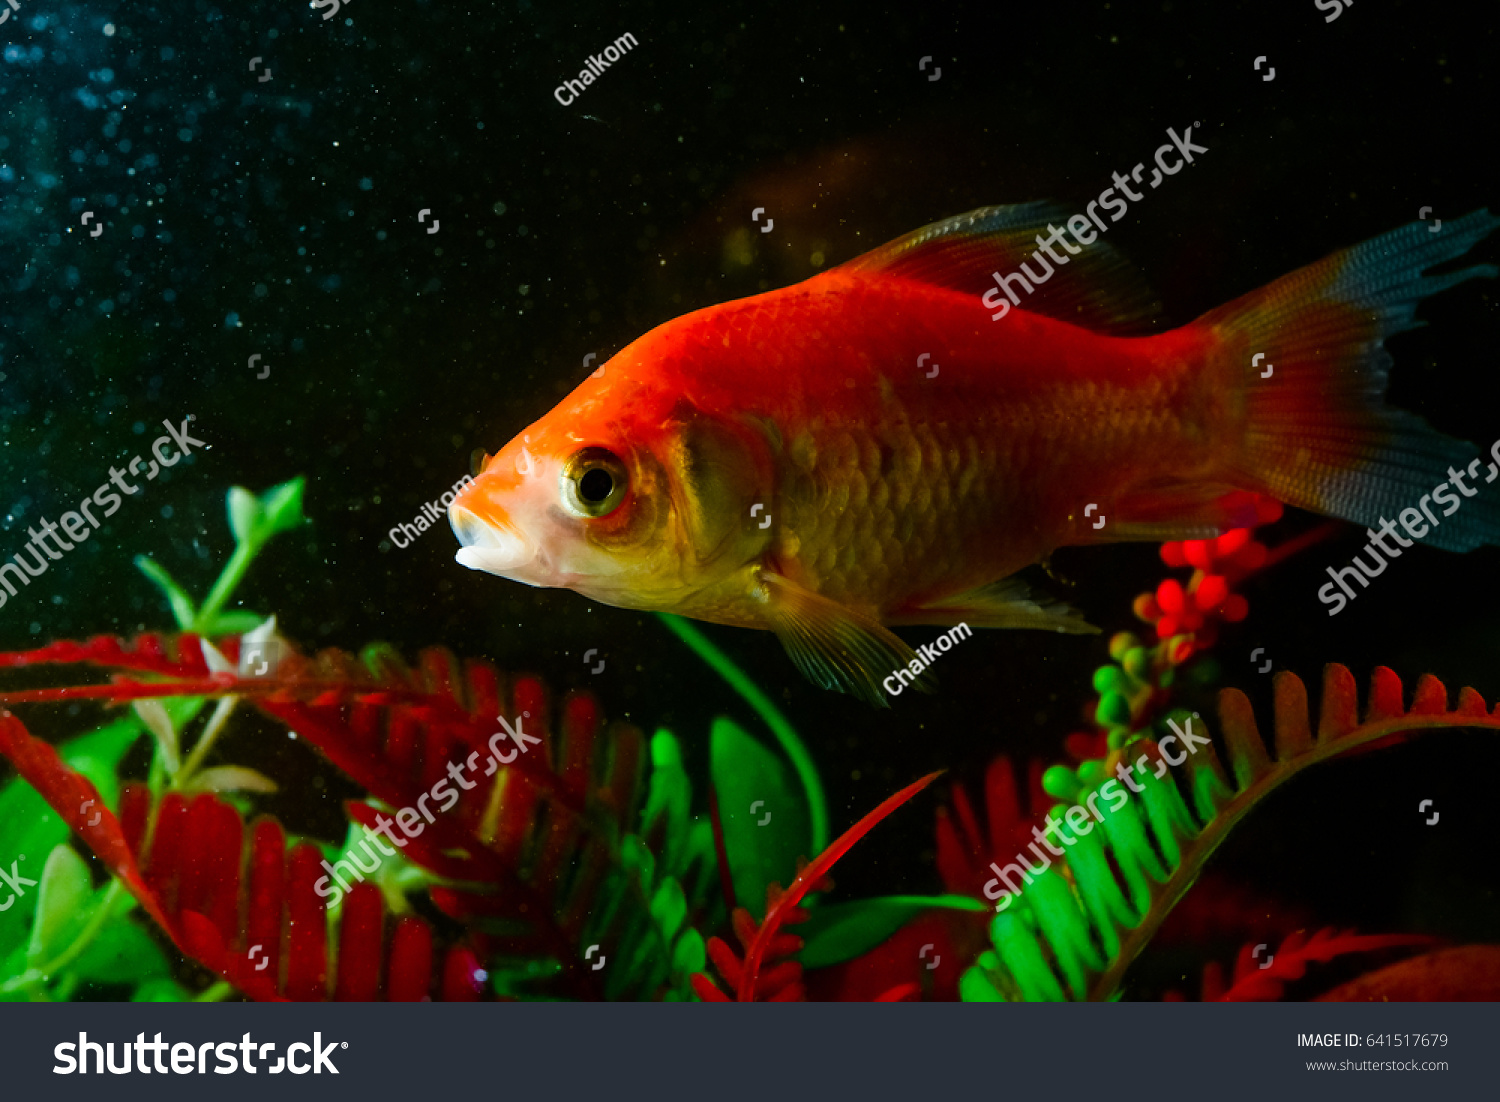 Colorful Fish Aquarium Stock Photo (Royalty Free) 641517679 ...